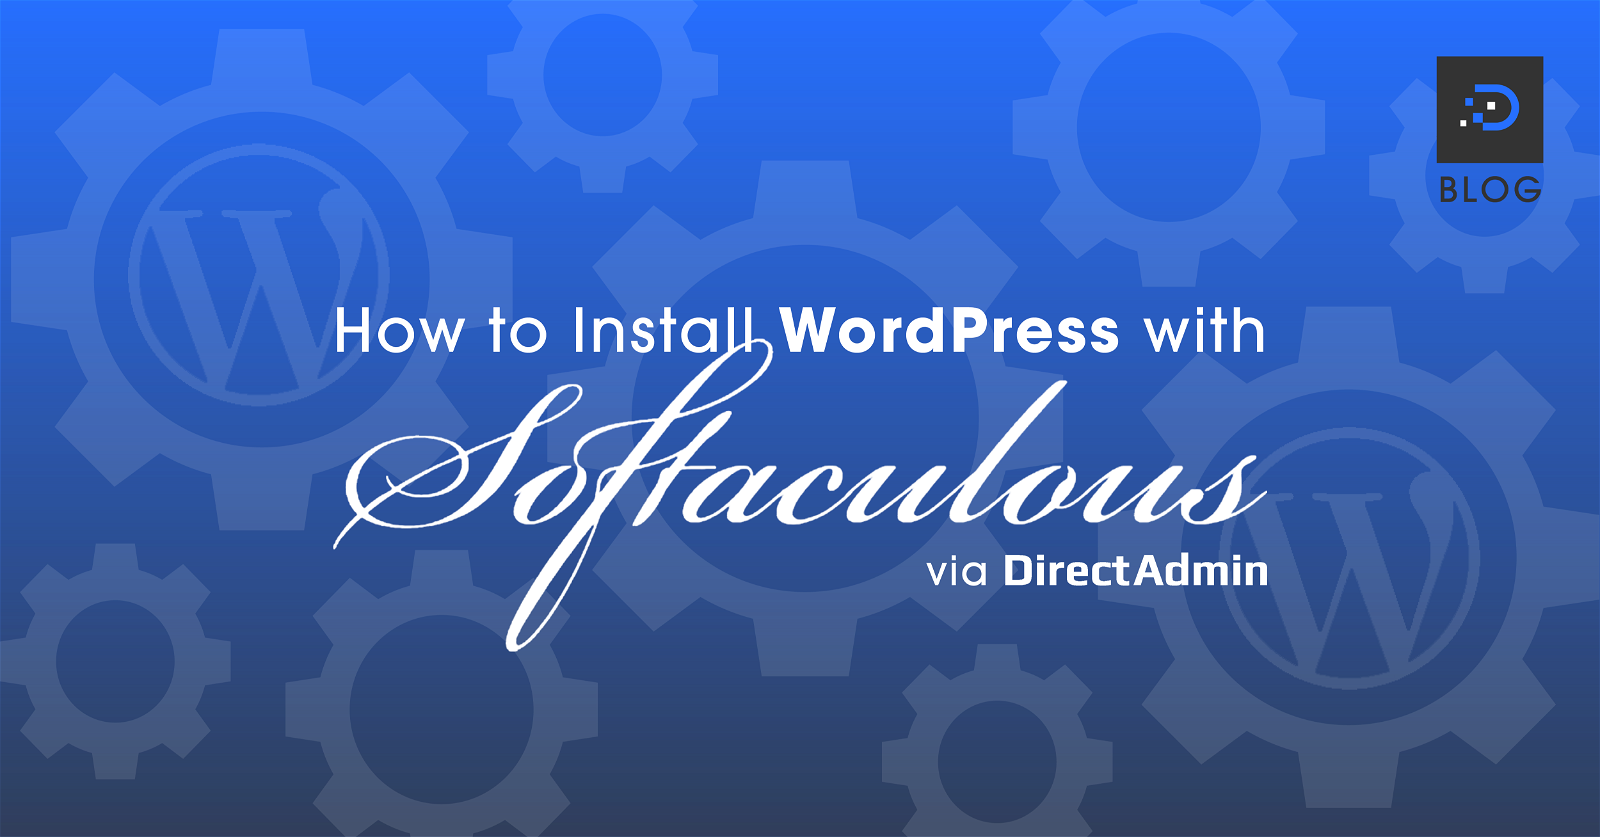 How to Install WordPress with Softaculous via DirectAdmin